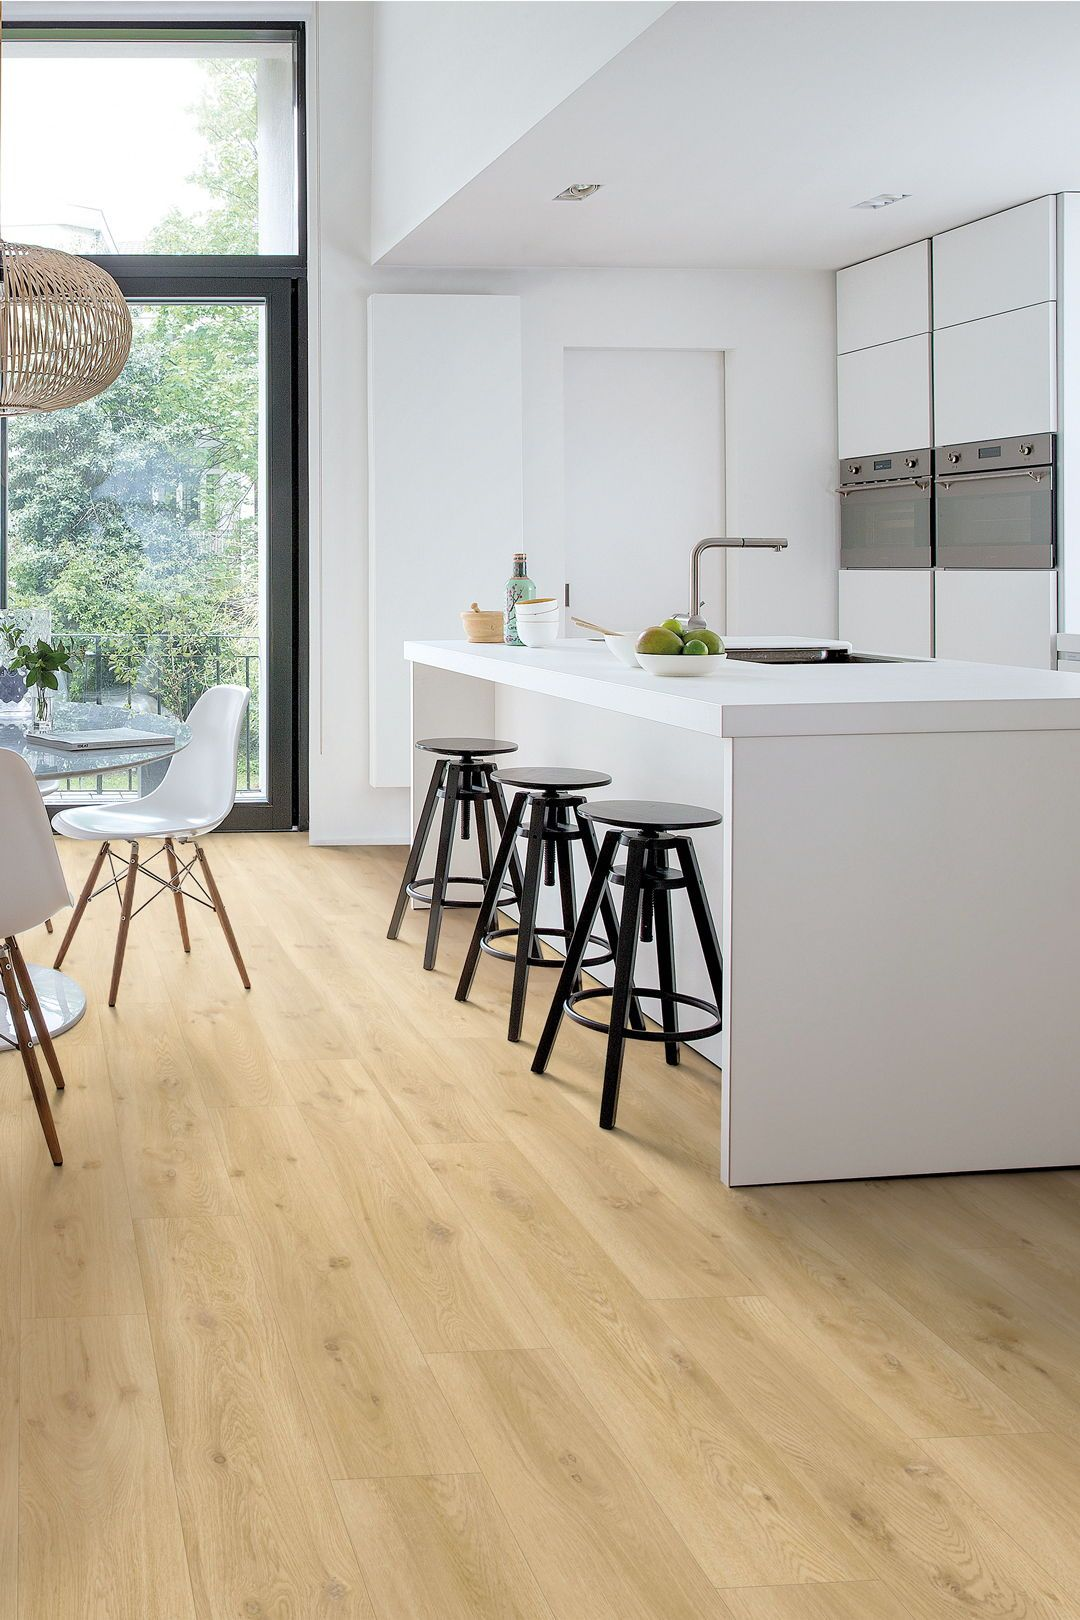 How to choose the perfect kitchen flooring | Kitchen floor ...